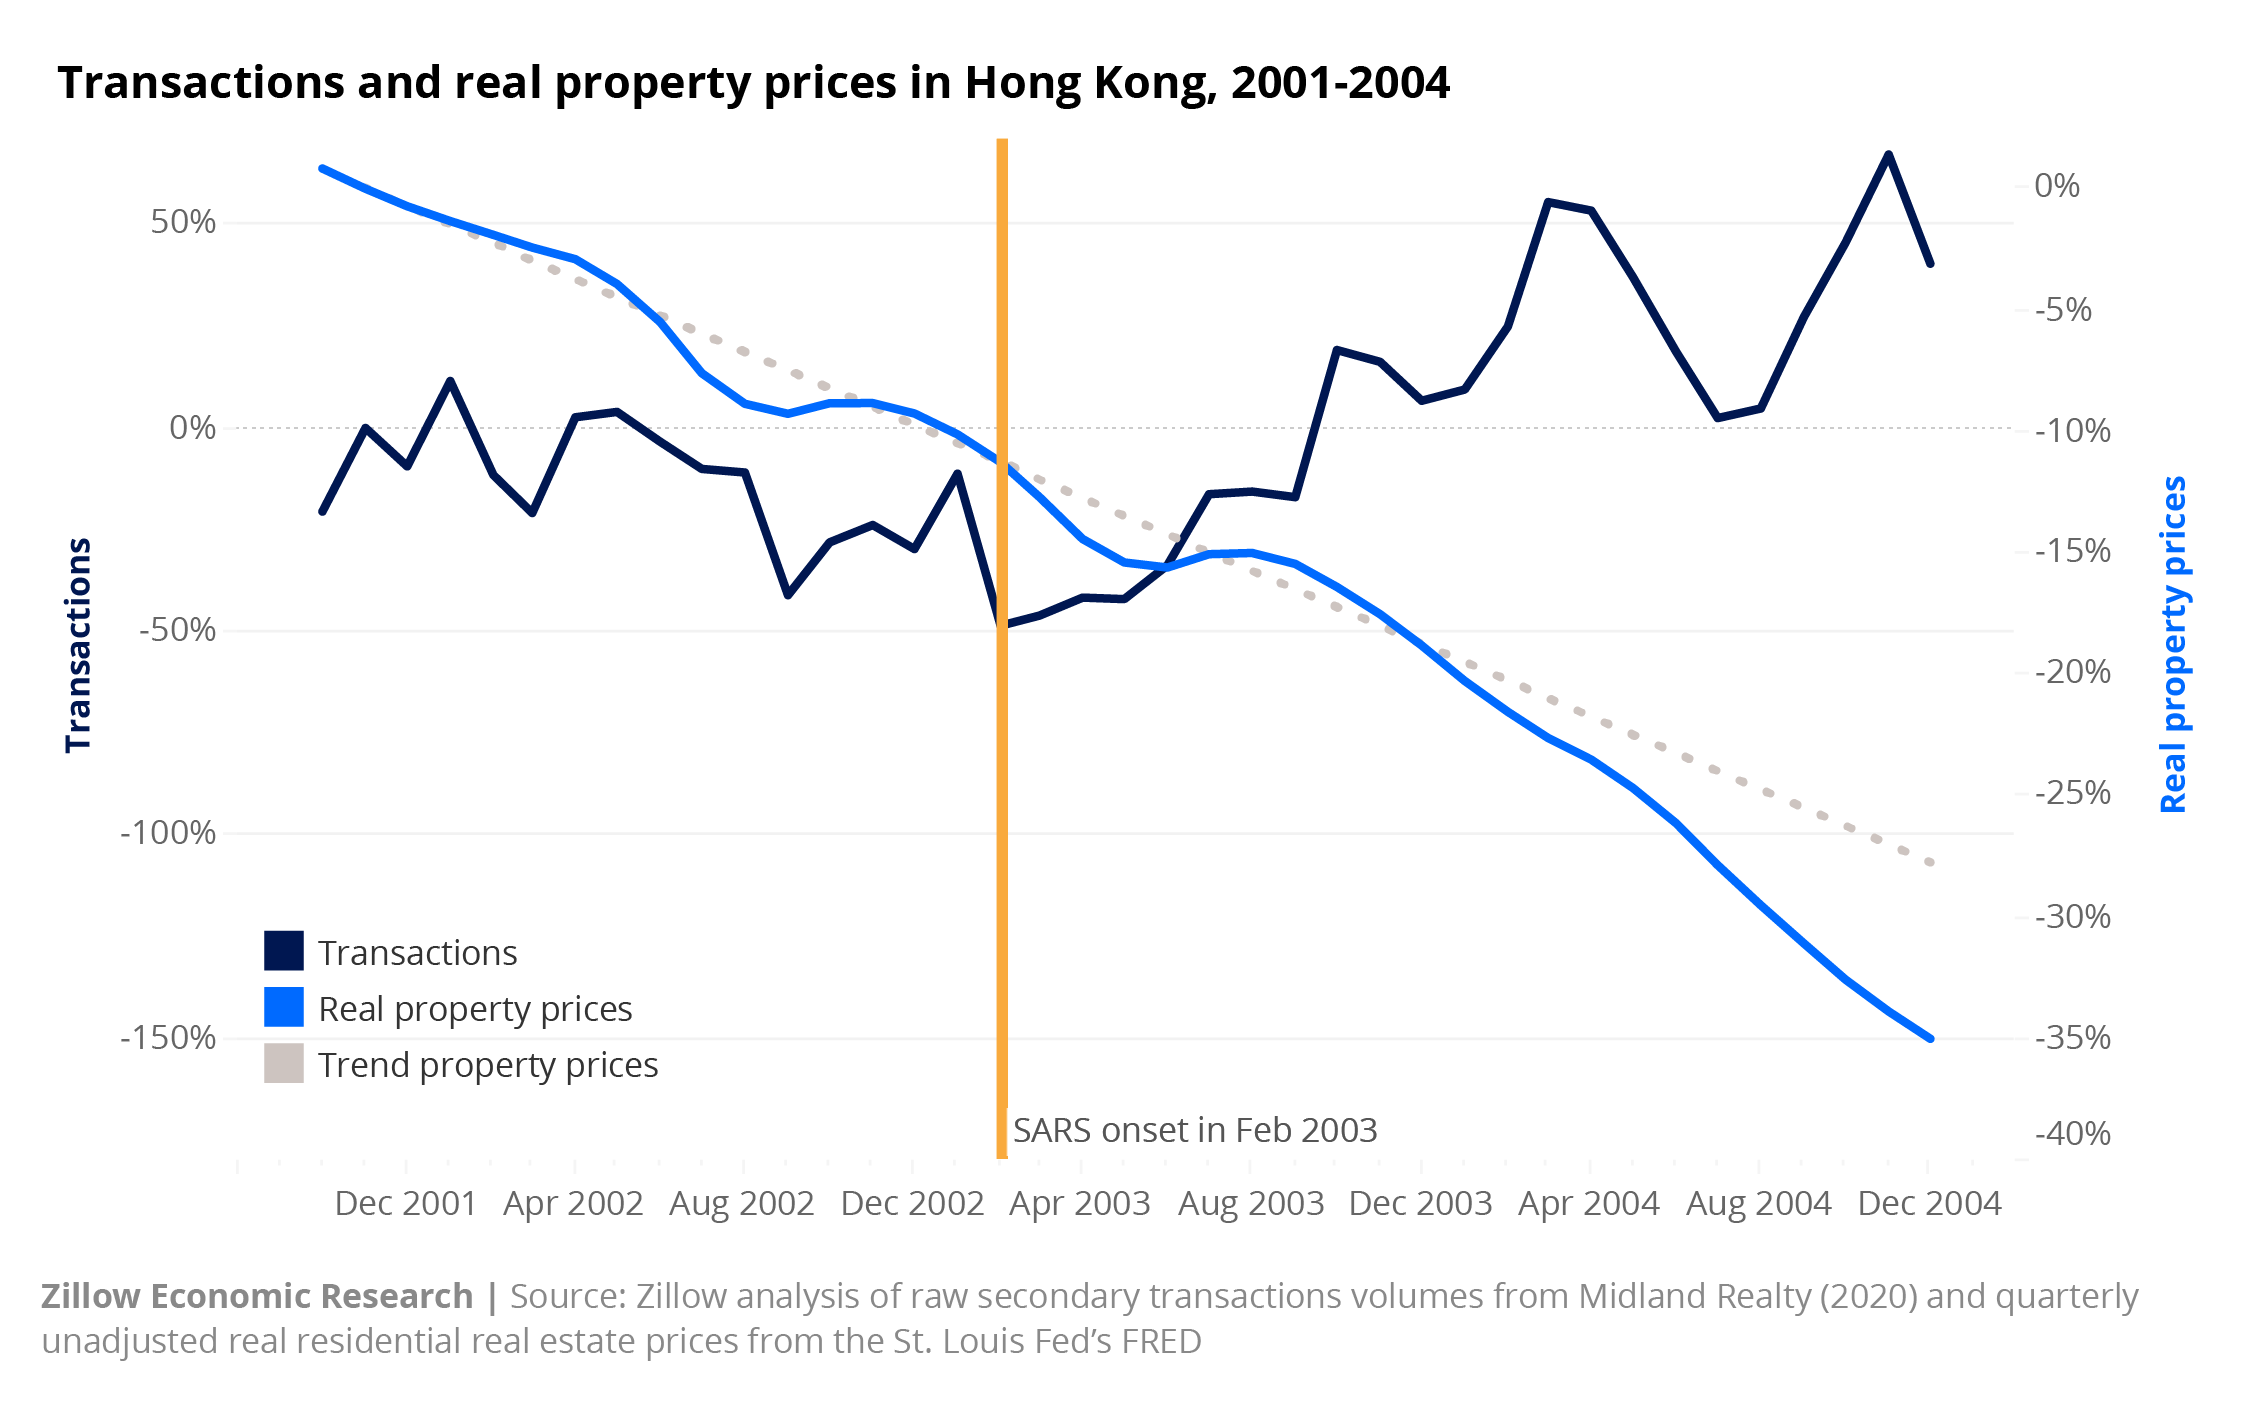 Hong Kong real estate market during the SARS outbreak